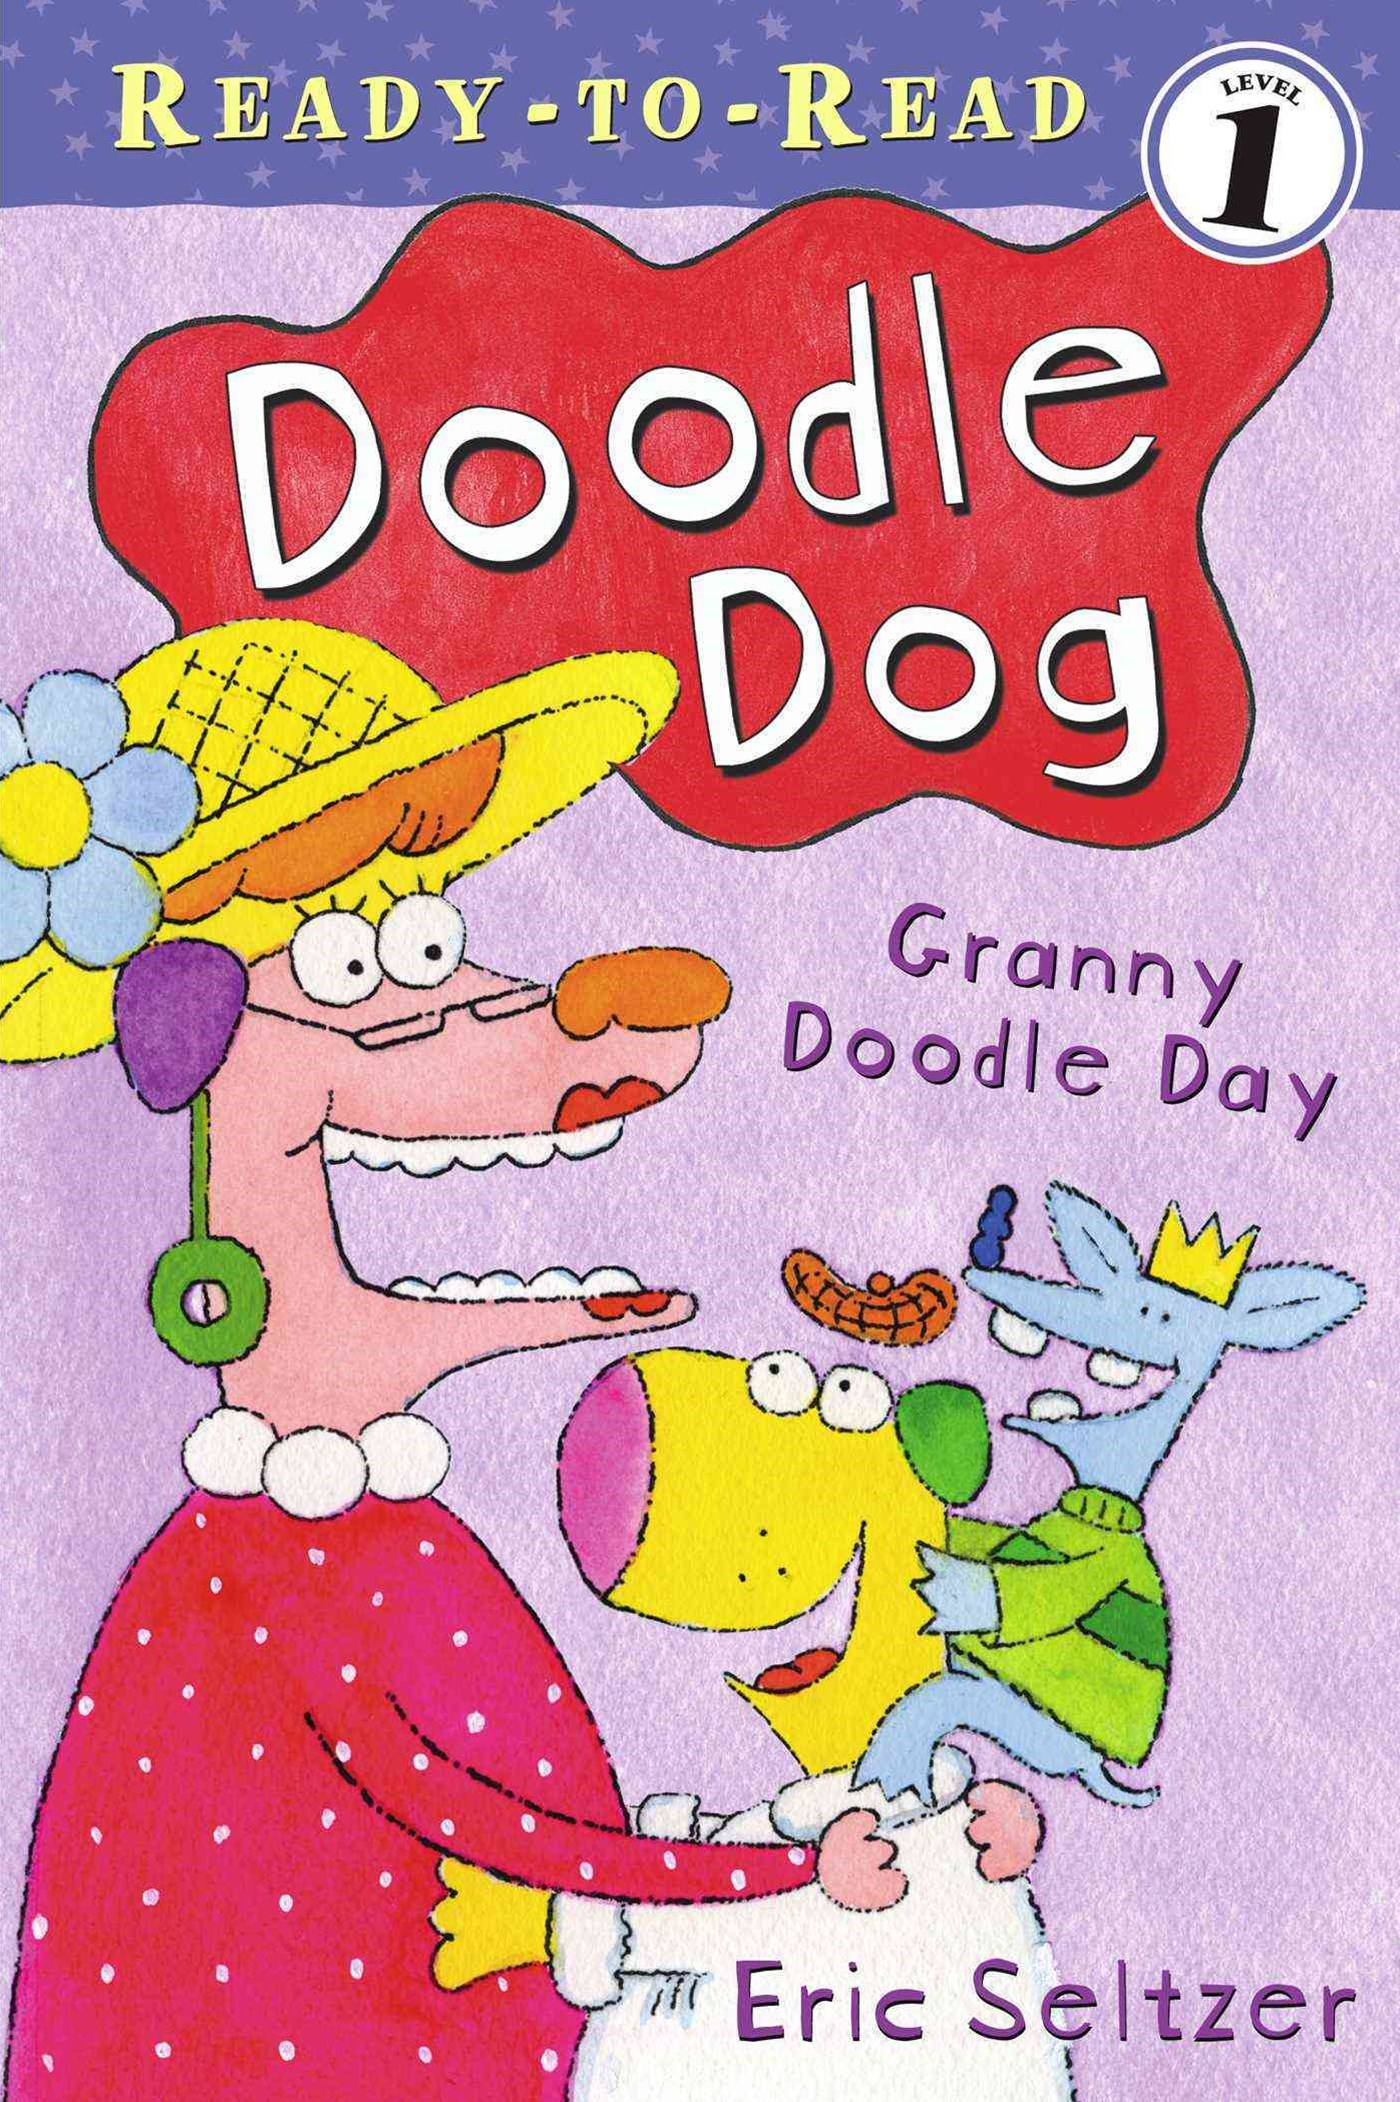 Granny Doodle Day